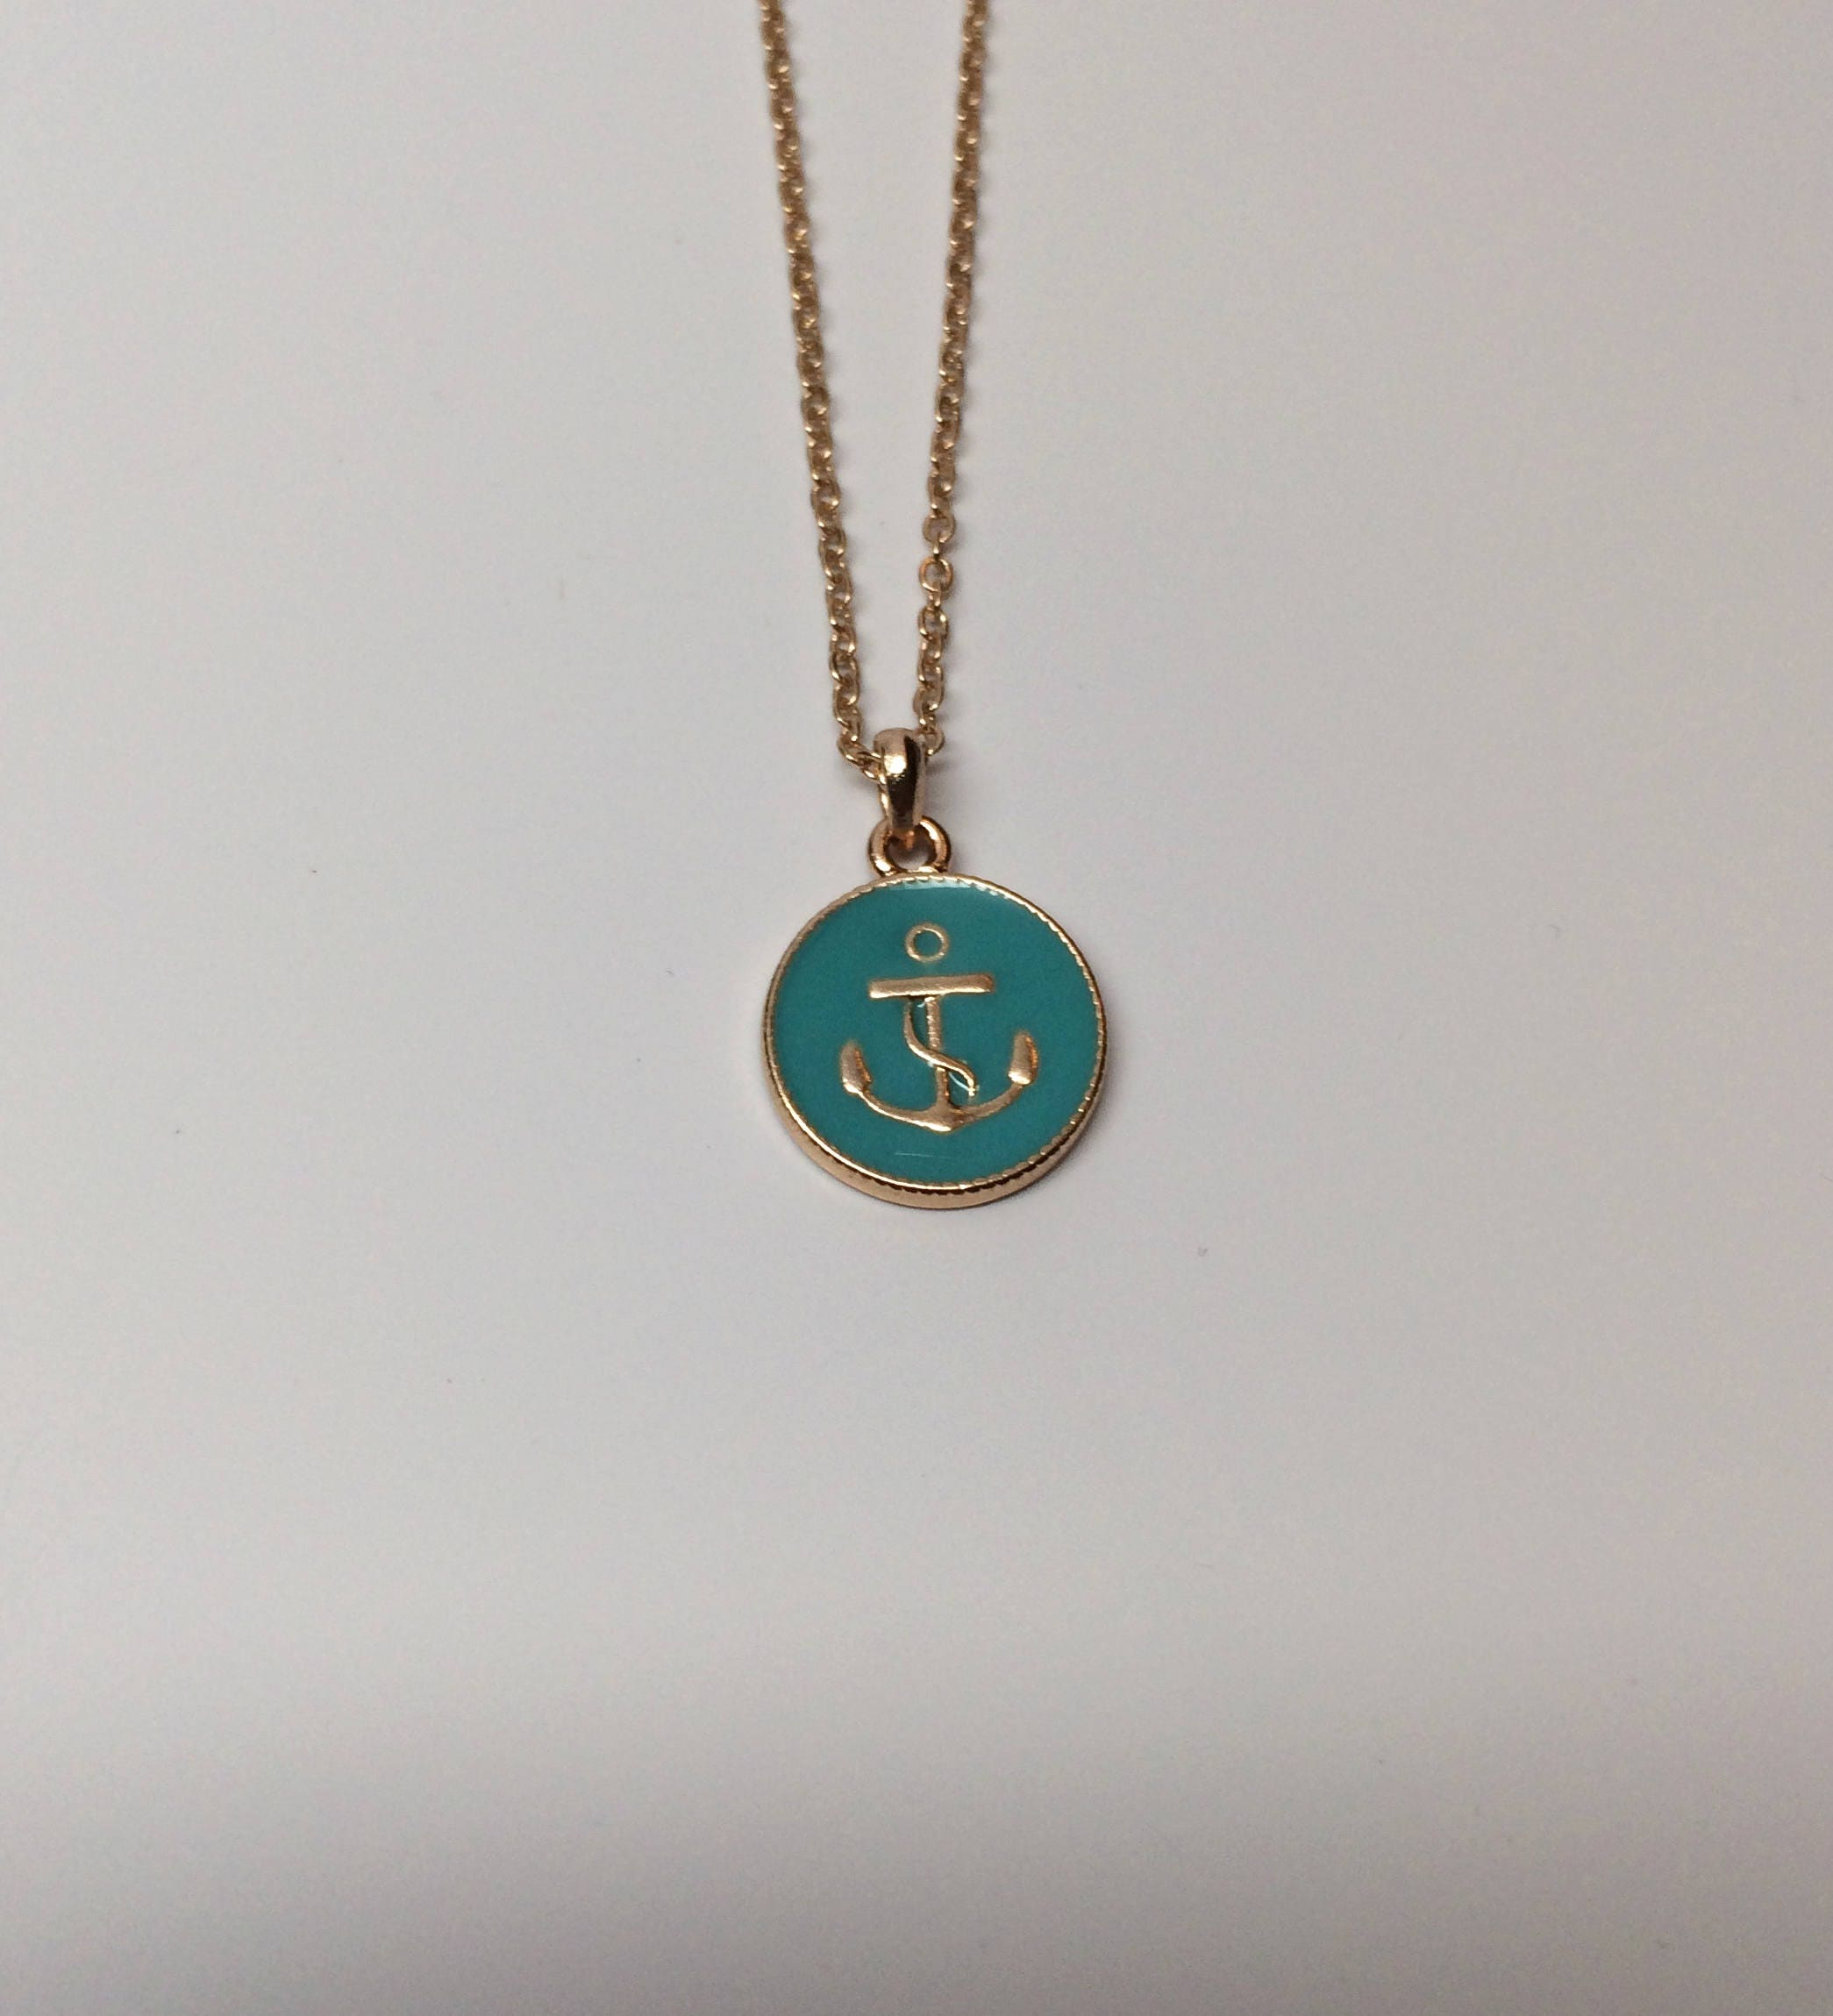 Choker Necklace Etsy: Anchor Necklace Gold Anchor Necklace Anchor Necklaces